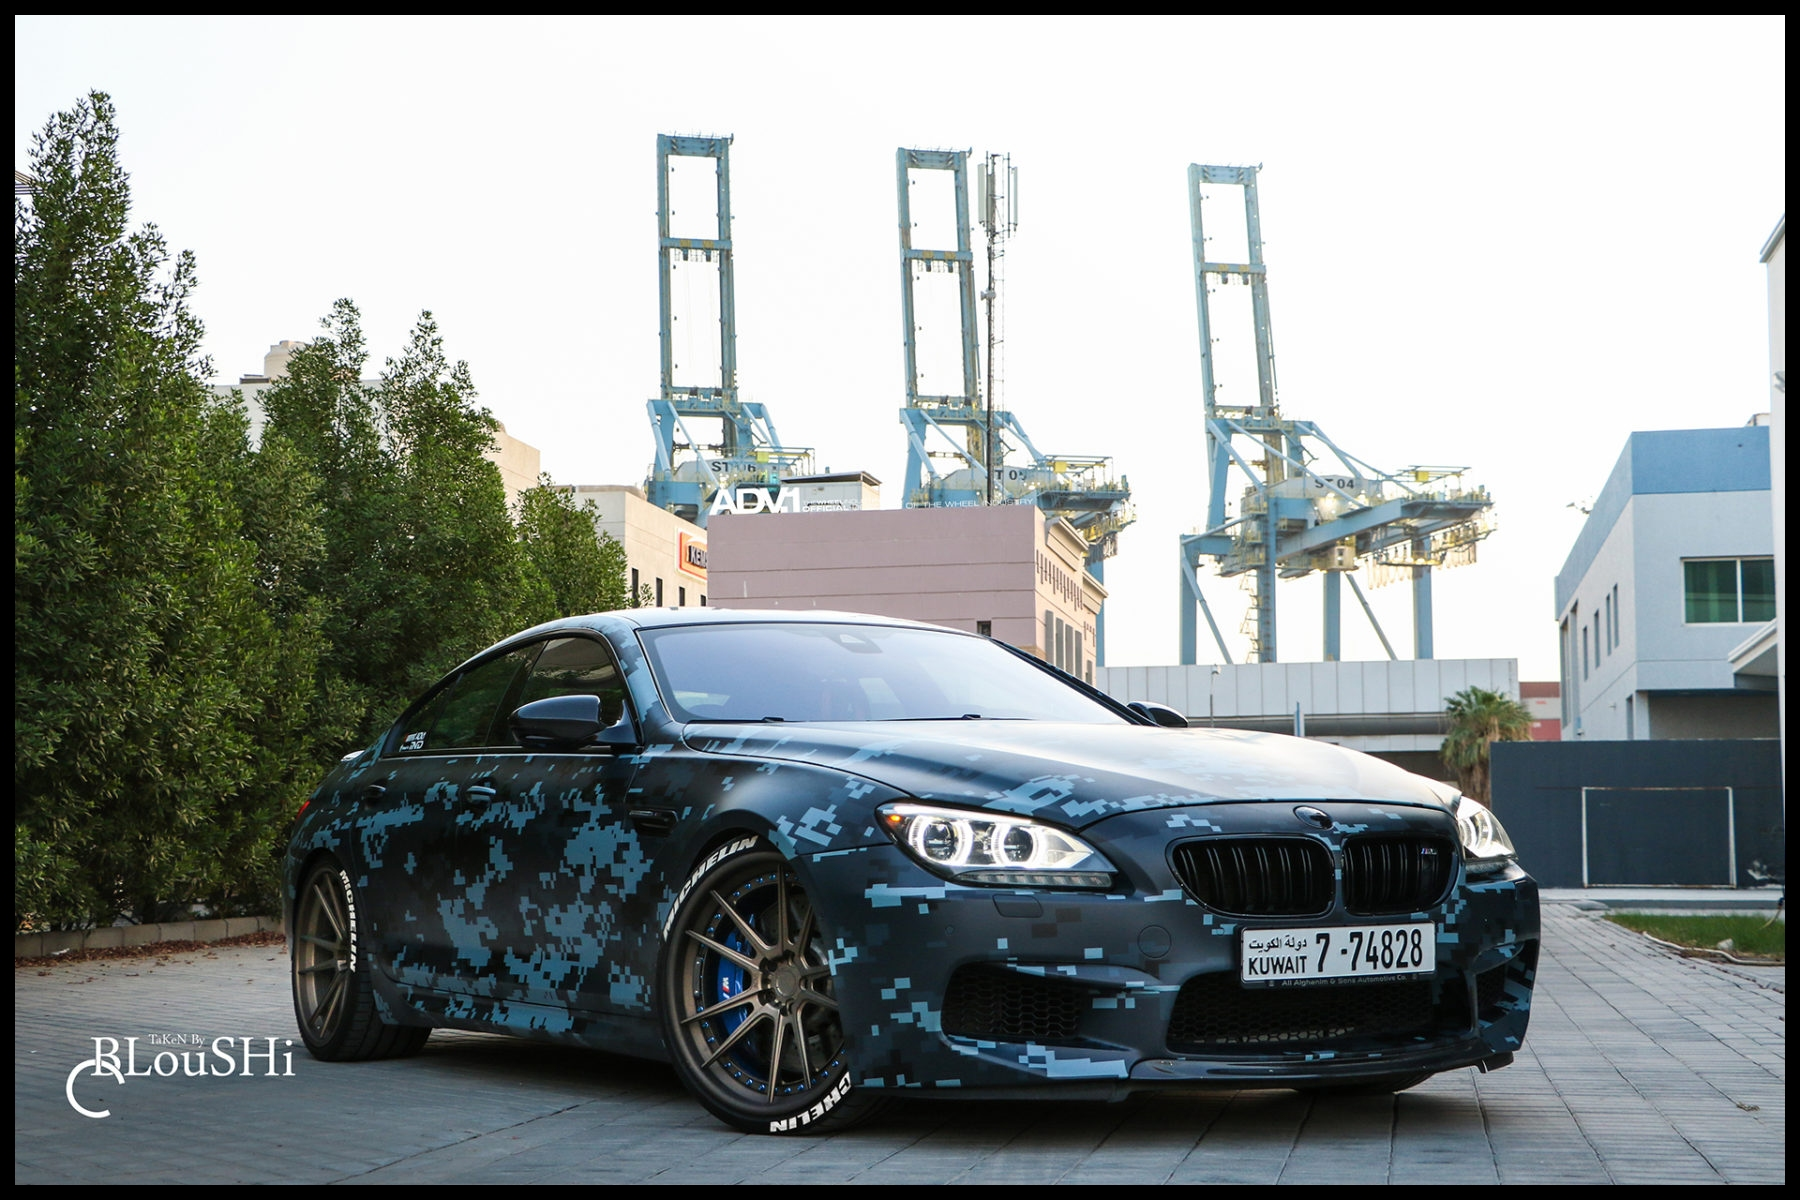 Blue Digital Camo Wrapped BMW M6 Gran Coupe With ADV 1 Wheels Wallpaper